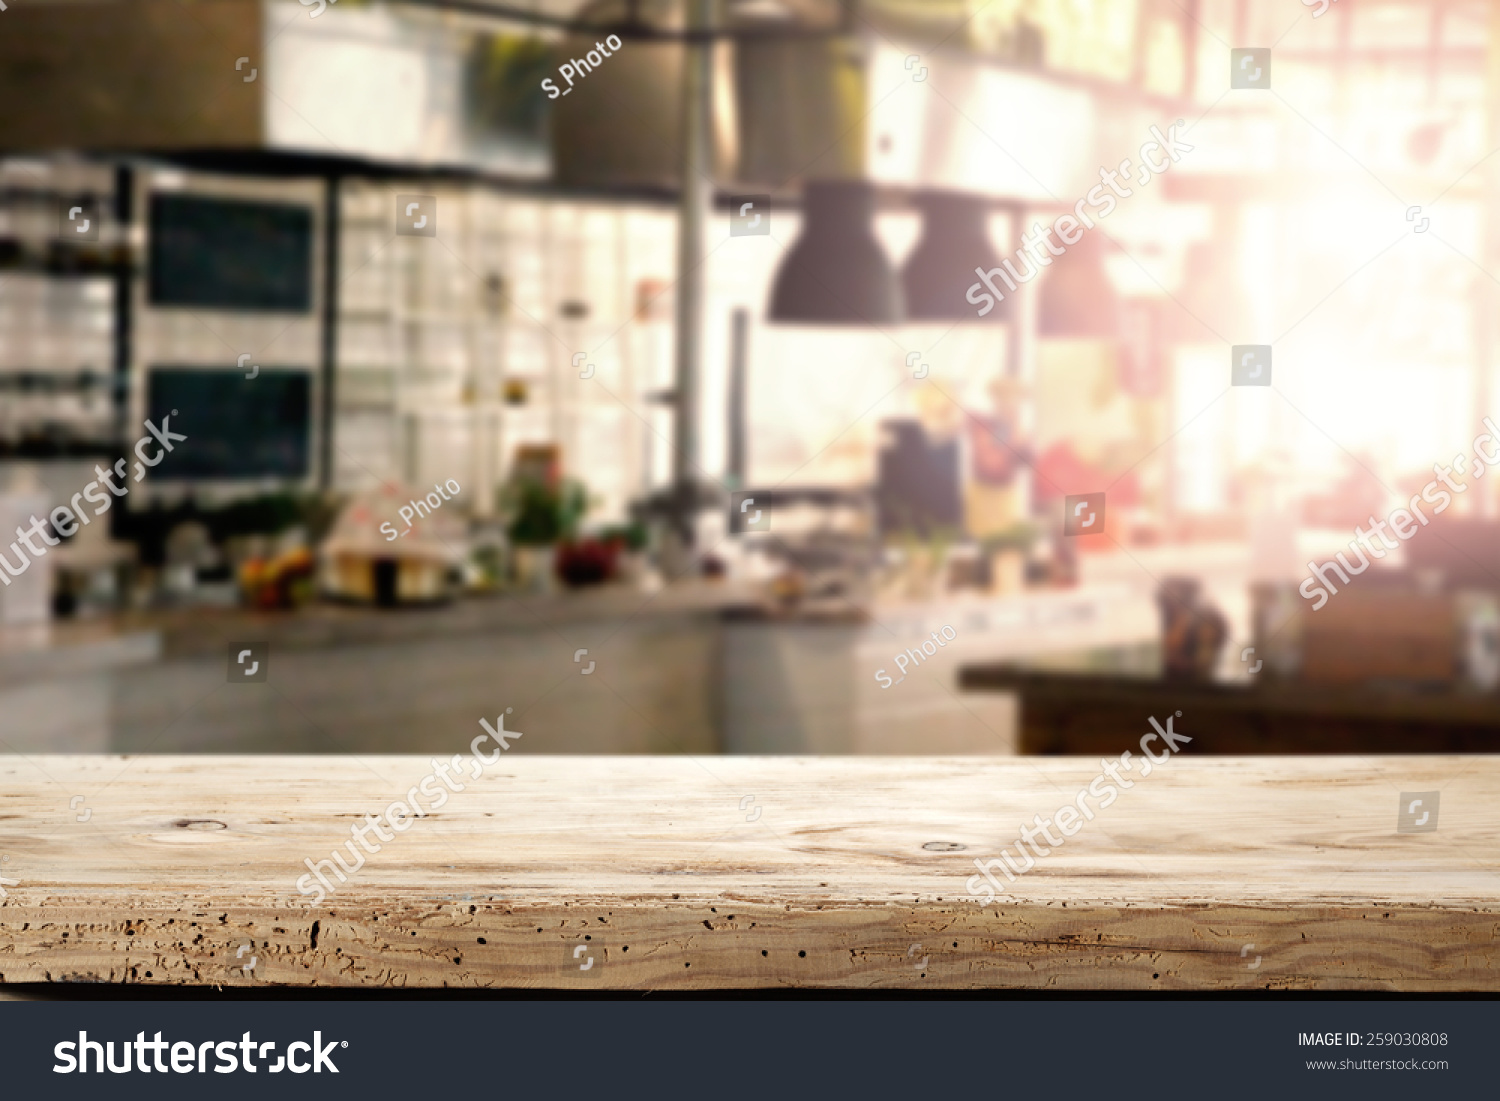 Restaurant Kitchen Furniture Interior Kitchen Restaurant Napkin Desk Space Stock Photo